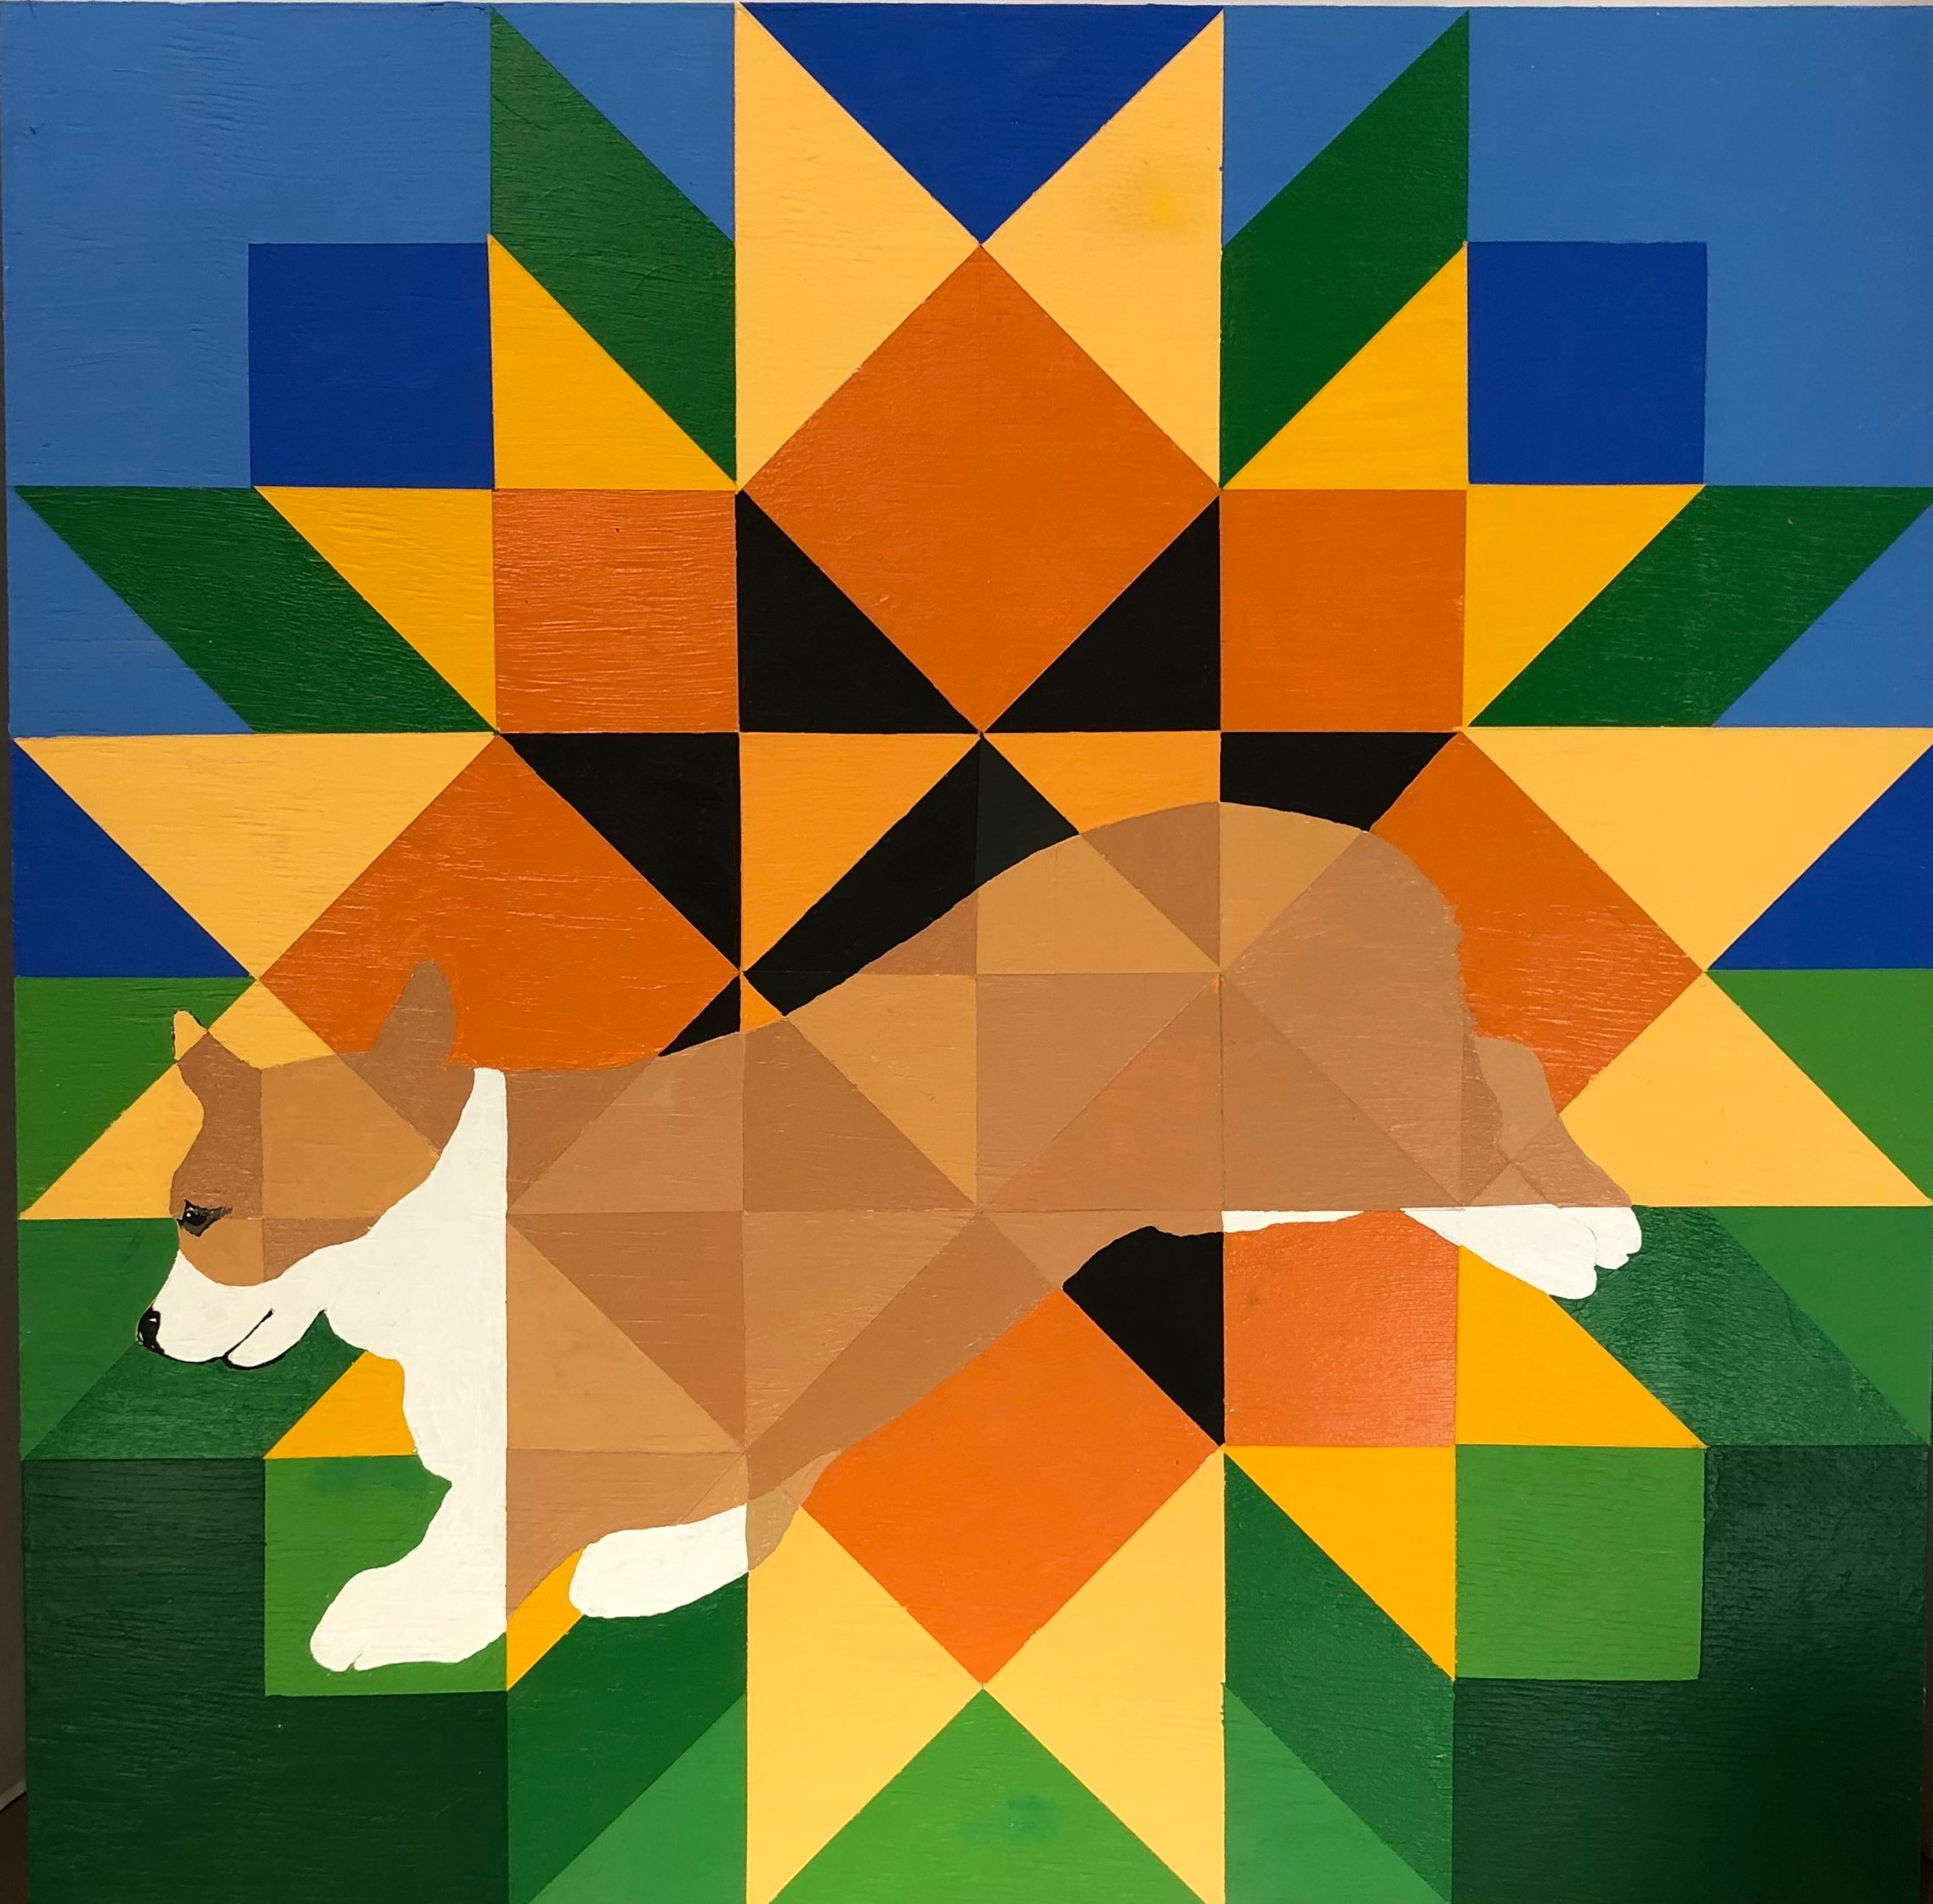 "SUMMER CORGI BARN QUILT. Acrylic on wood. 24 x 24"" . All barn quilts are varnished and weather proofed. But they still wont last forever outdoors. $150"